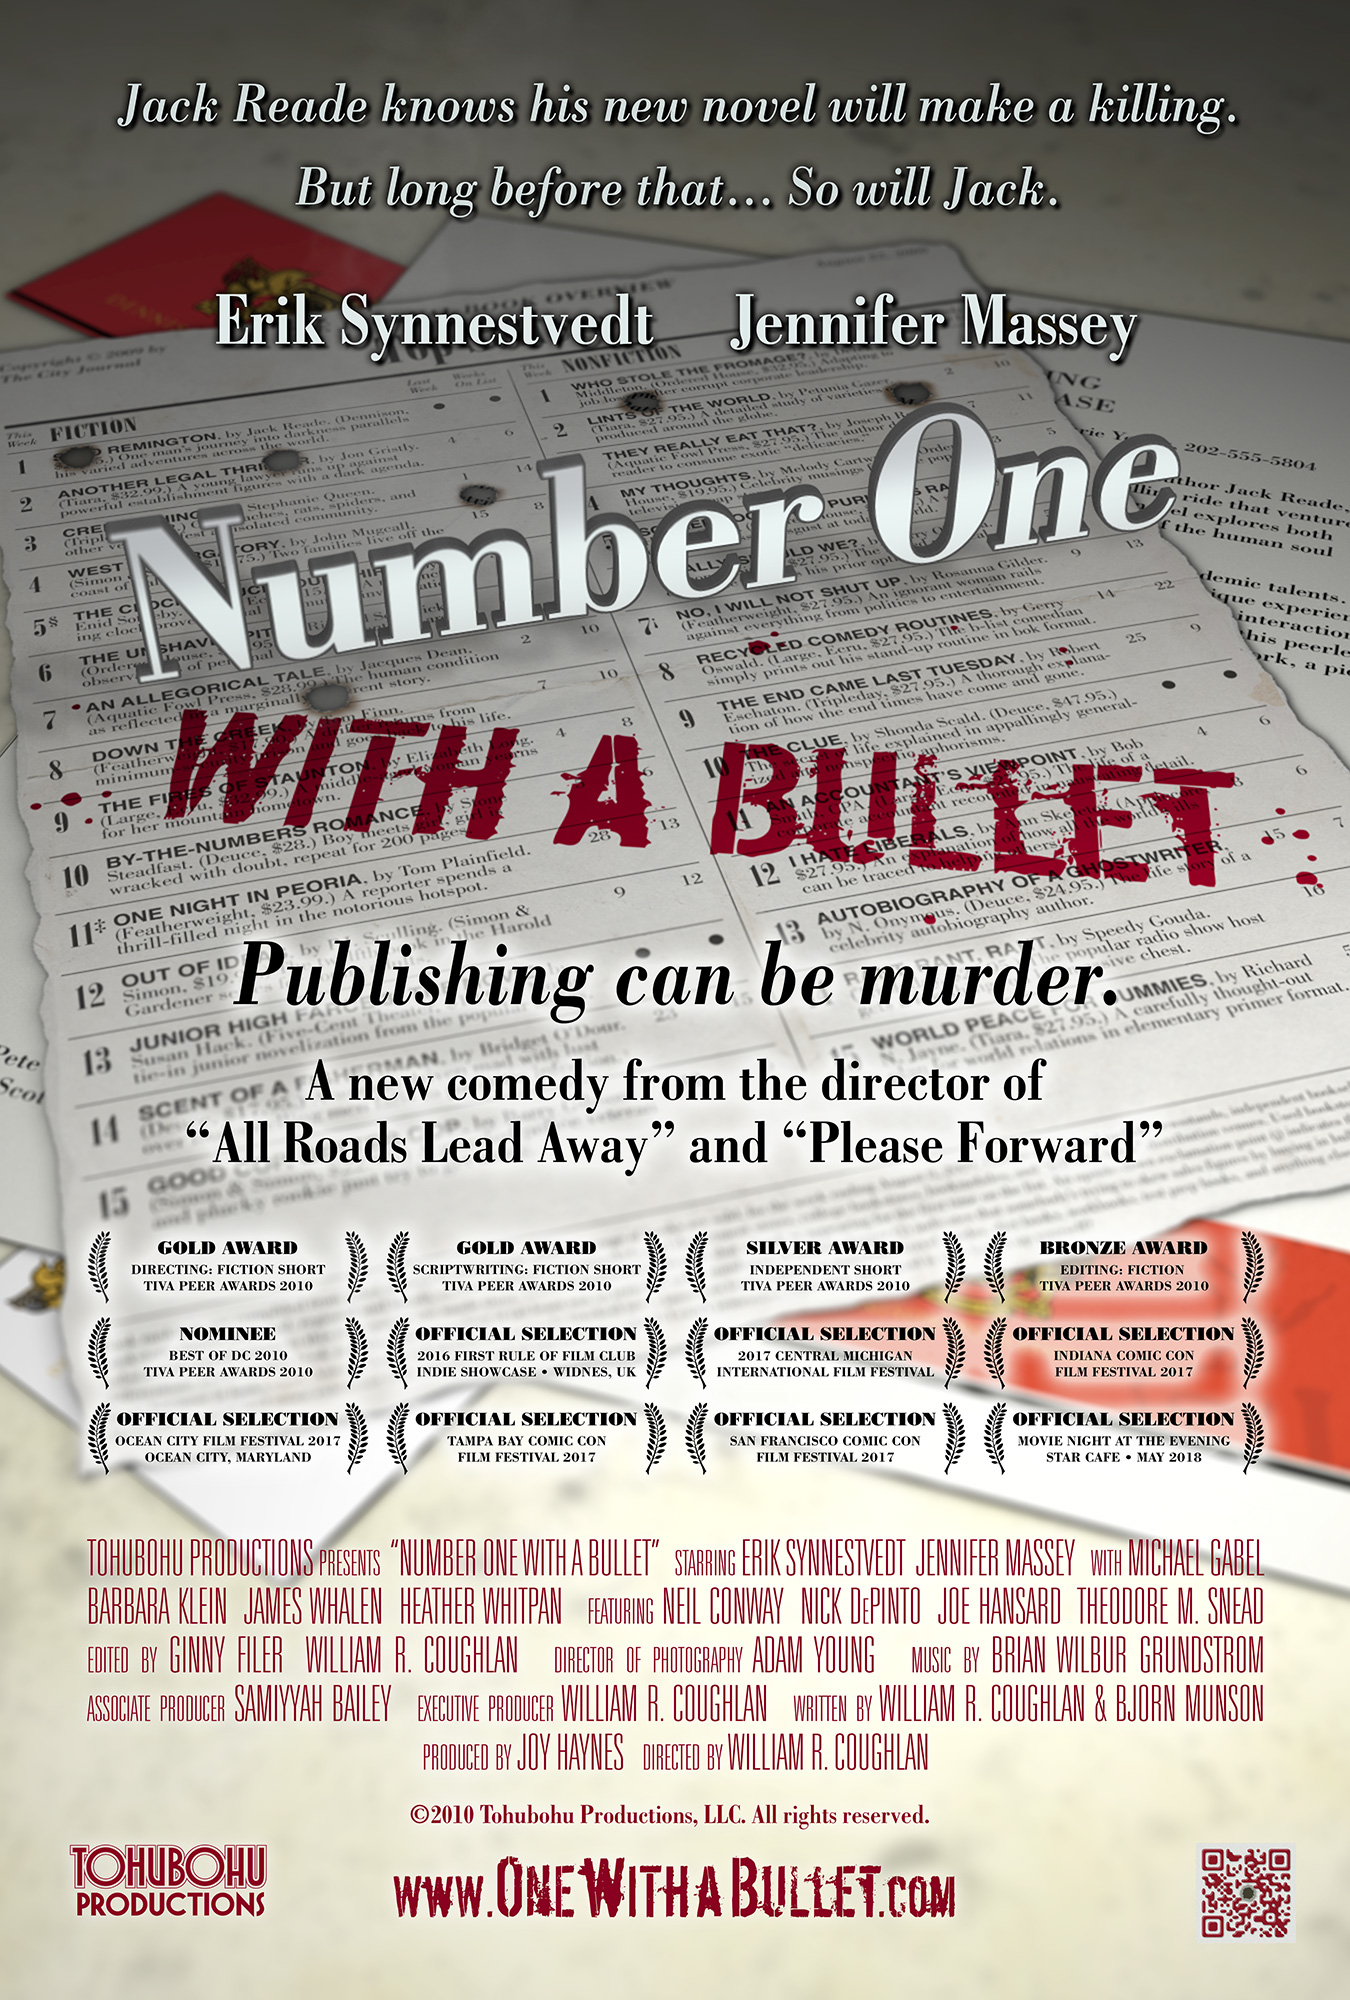 "Number One With a Bullet - 2010 · 19:42 · written by William R. Coughlan & Bjorn Munson · produced by Joy Haynes · directed by William R. CoughlanJack Reade is a mild-mannered academic who finally has a chance to publish his own Great American Novel. But just as he thinks his tome will see print, Pete Willoughby, a smug and influential editor, informs Jack that the book will remain locked in publishing purgatory. After an accident befalls Pete, Jack forges a desperate alliance with Carrie Singer, a disgruntled employee who also happens to be the book's number-one fan. Together, they concoct an insane scheme to cover up Pete's death and greenlight the book. Unfortunately, the publishing process is chock full of required approvals, and before long, other denizens of Dennison Publishing begin to fall prey to ""accidents.""The team that brought you the popular and award-winning shorts ""Screening Process,"" ""Quite Contrary,"" ""Machinations,"" ""You Pay Your Dues,"" and ""All Roads Lead Away"" is back with ""Number One With a Bullet,"" a fast-paced black comedy short. At the 2010 TIVA Peer Awards, the film took home a Bronze, a Silver, and two Gold Awards, as well as garnering a nomination in the prestigious ""Best of DC"" category."